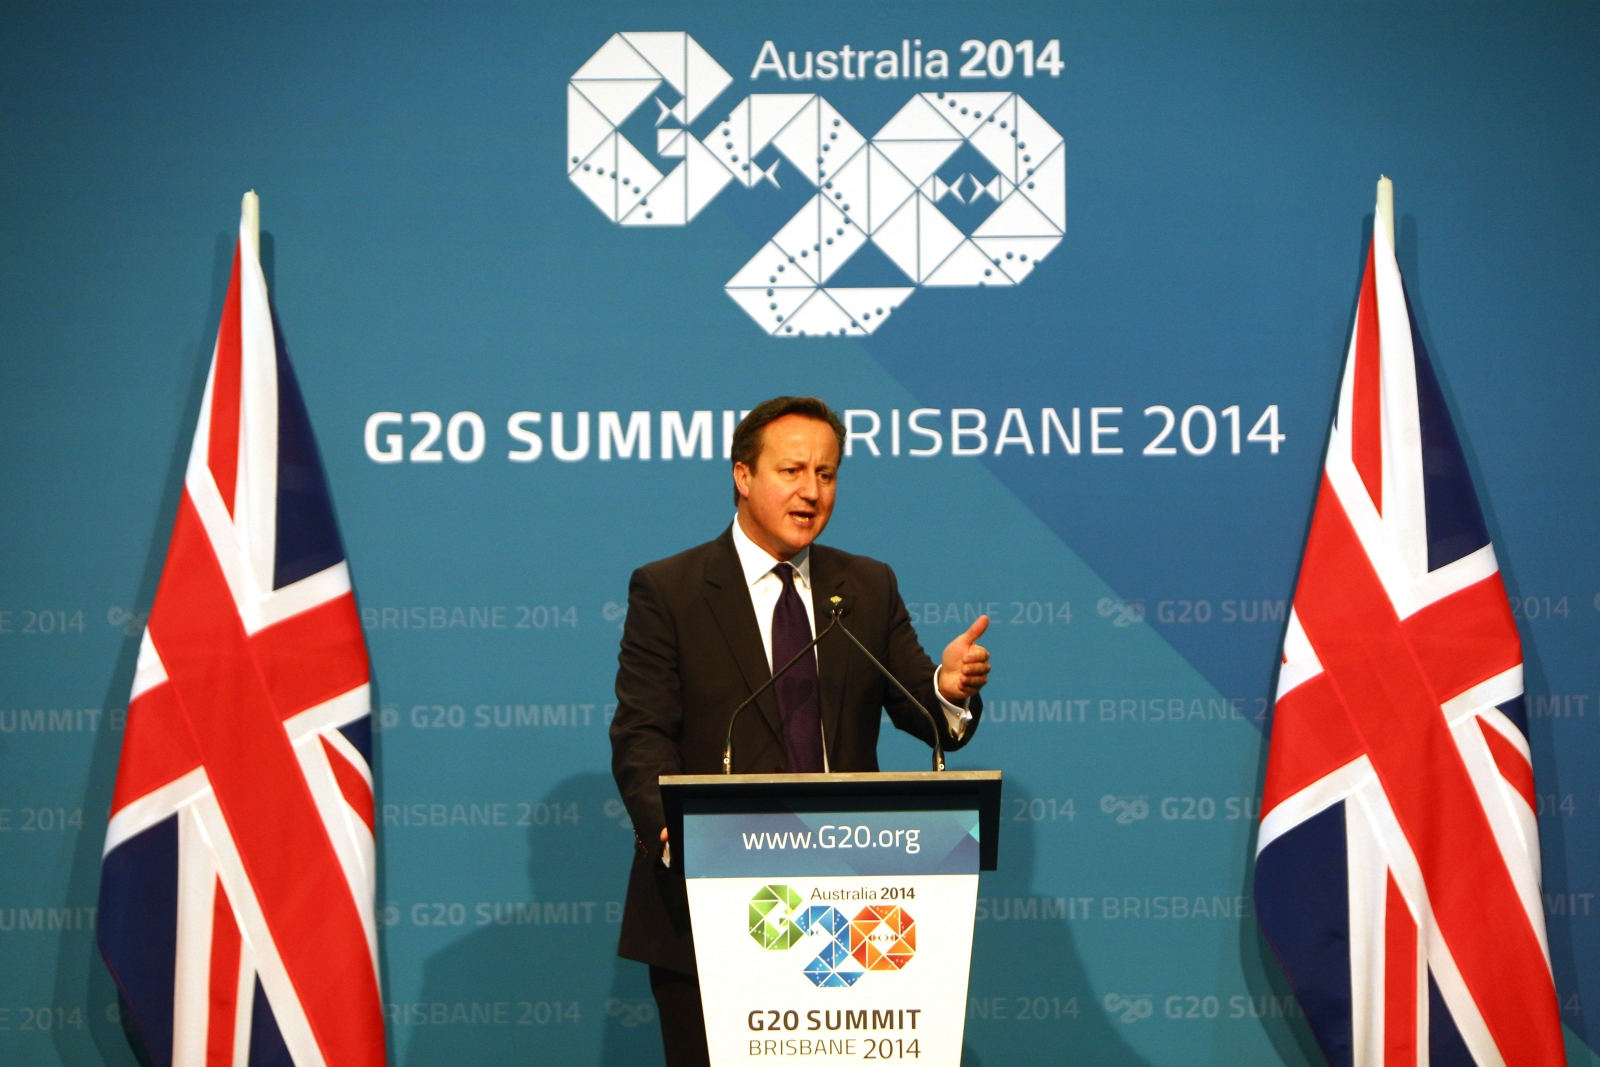 David Cameron speaks at the G20 summit in Brisbane, Australia. (Getty)